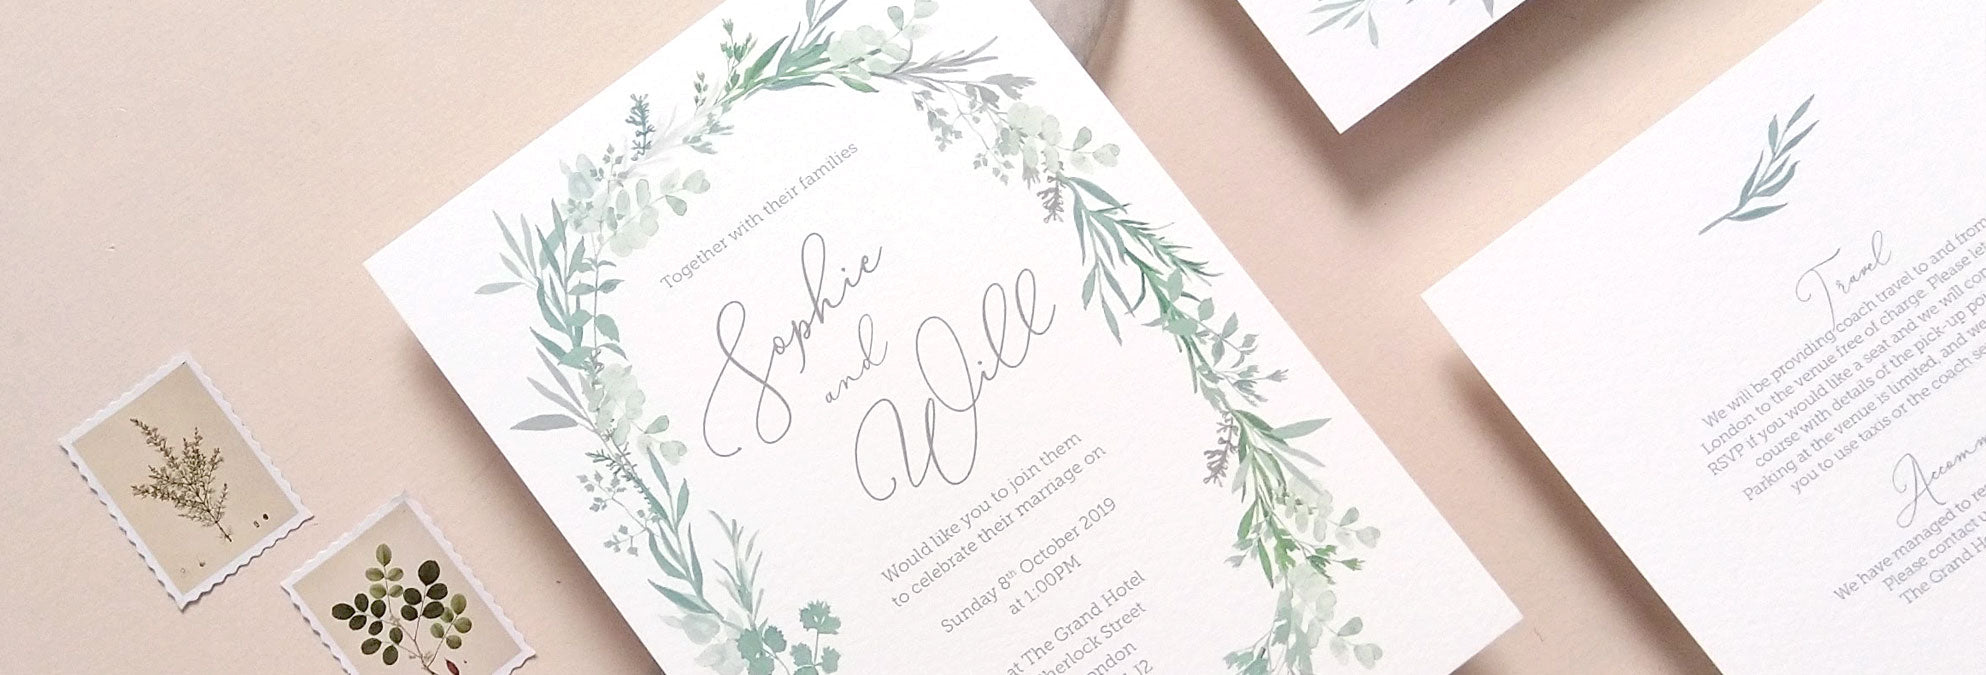 Italian wedding invitation design